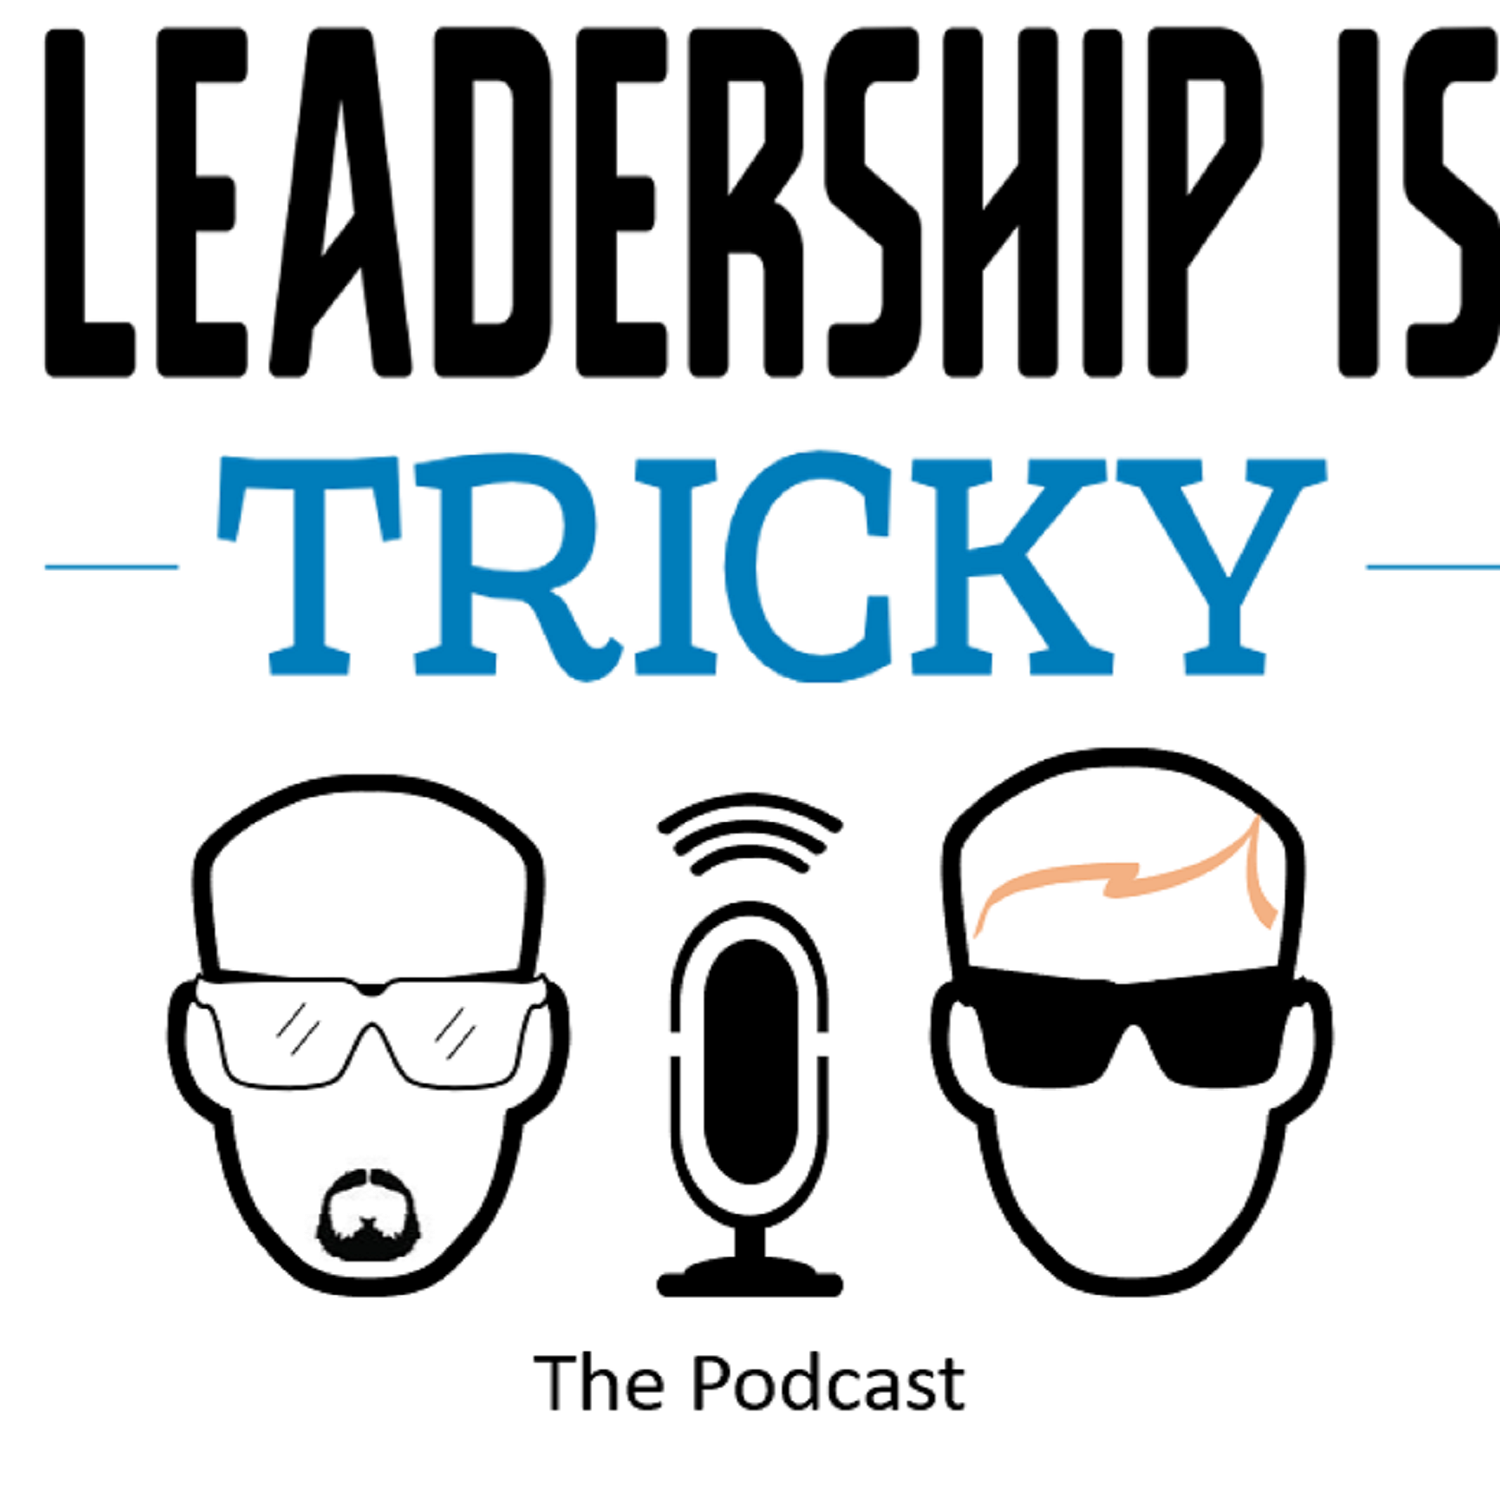 Episode 11 - Innovation, Cultural Facilitation, Humility with Trish Martinelli